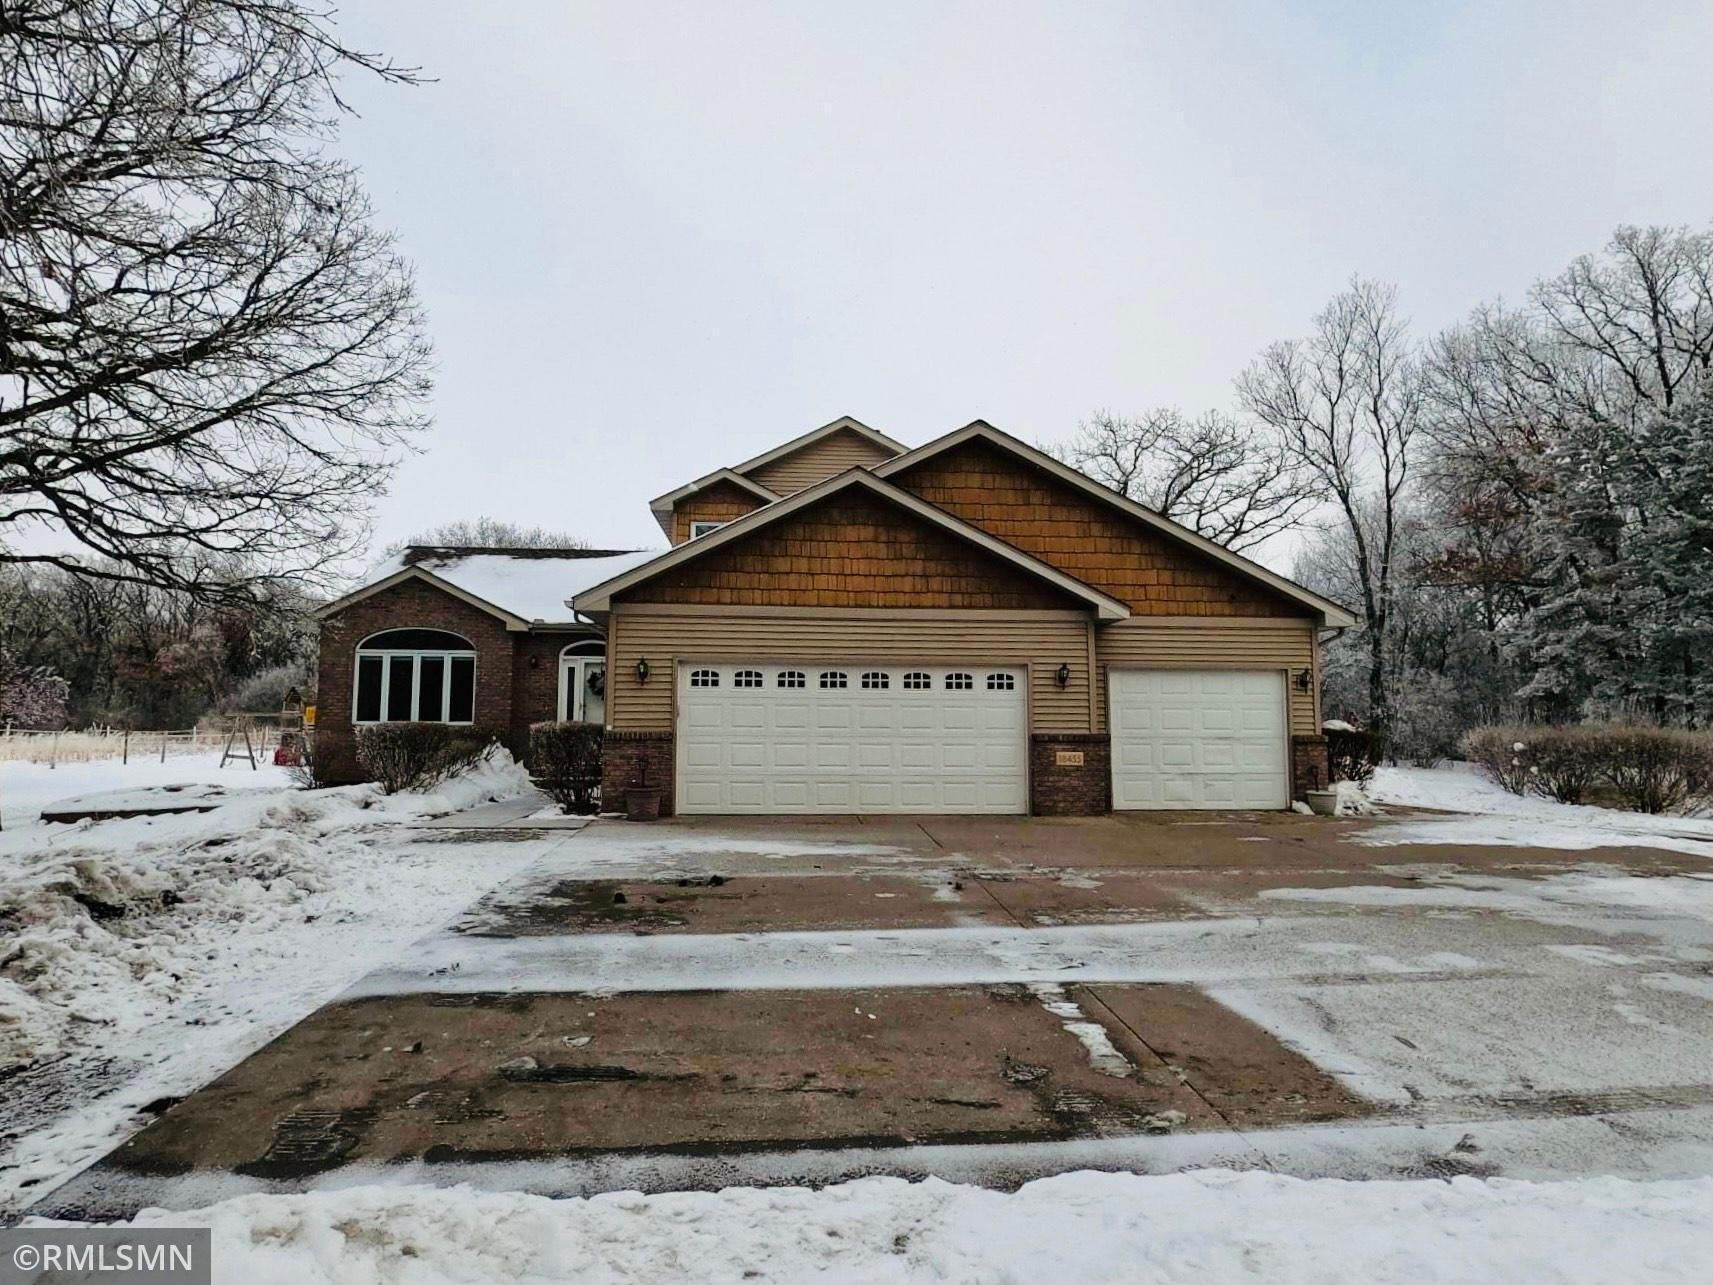 18455 163rd Street NW Property Photo - Big Lake Twp, MN real estate listing